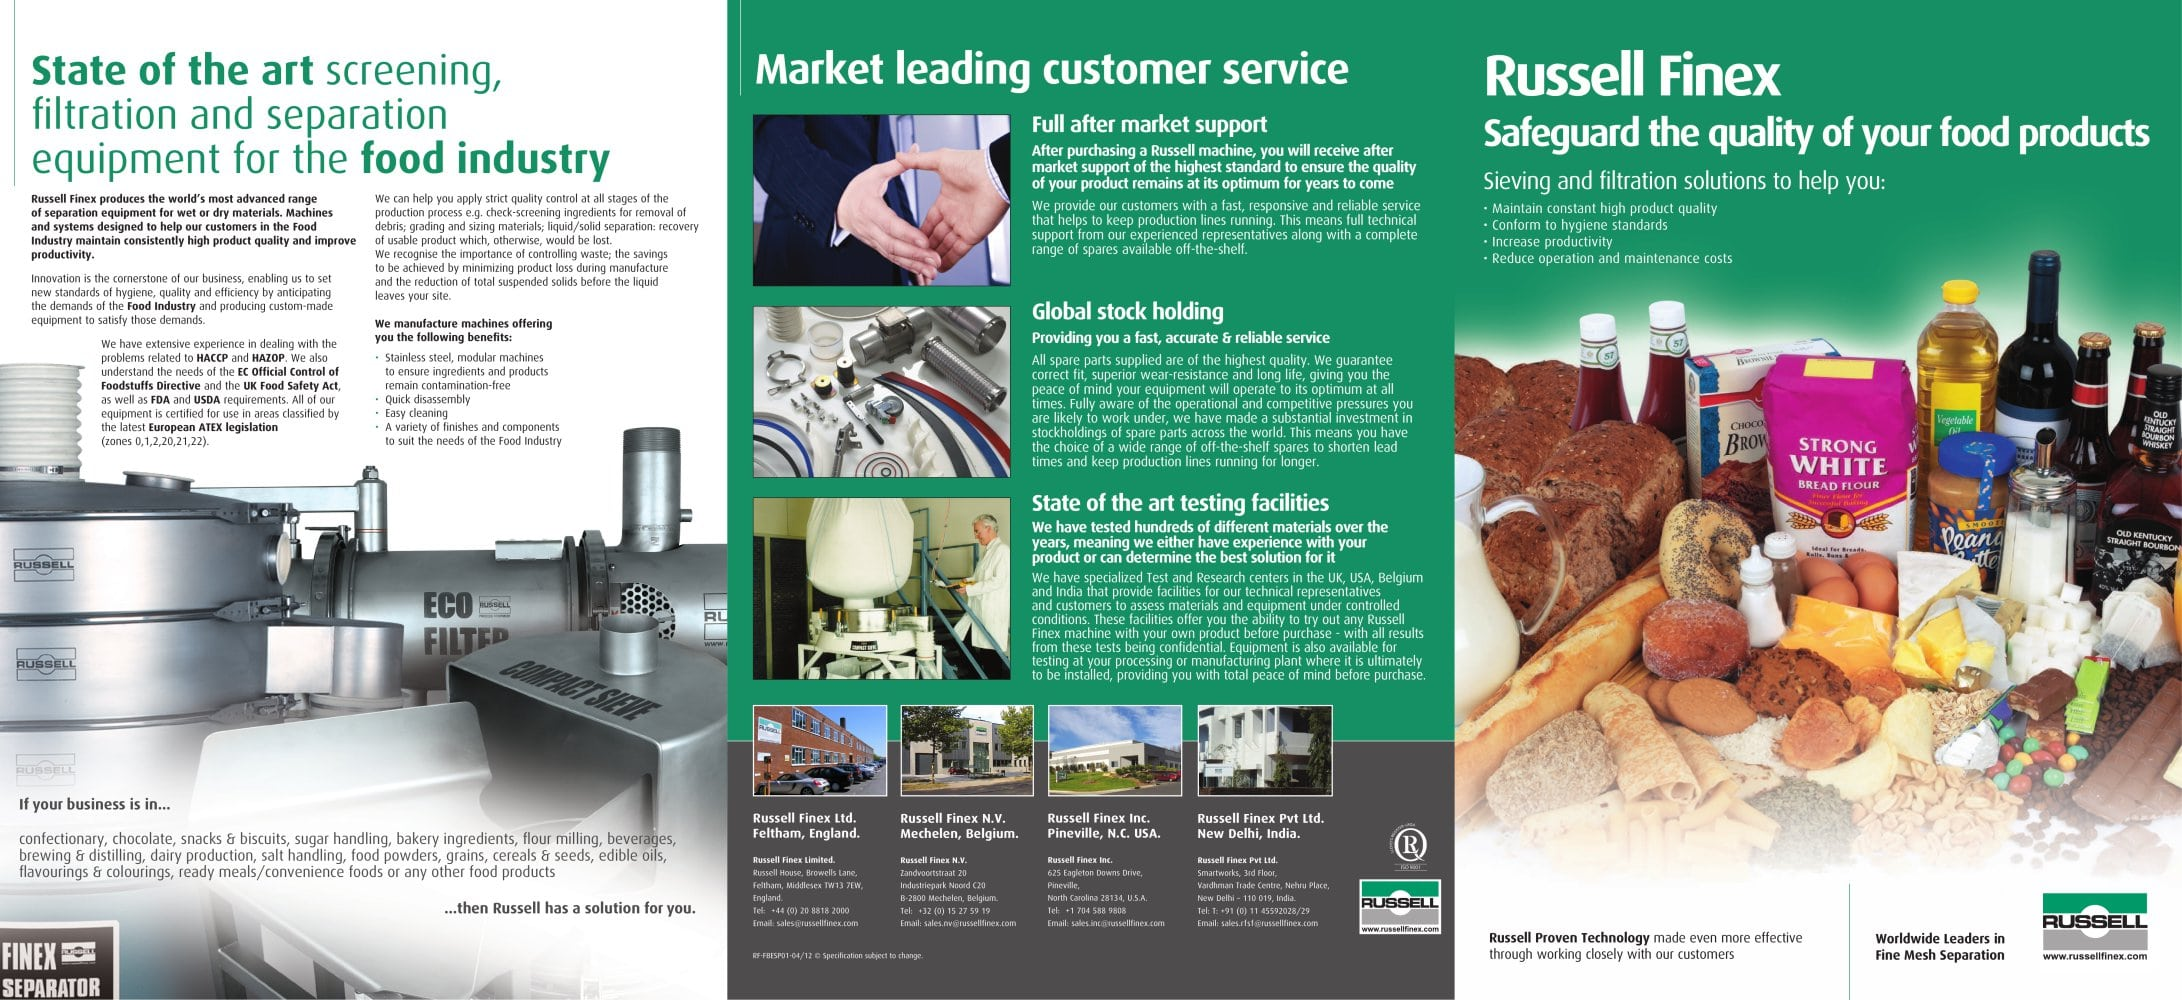 Russell Finex separation equipment for the Food